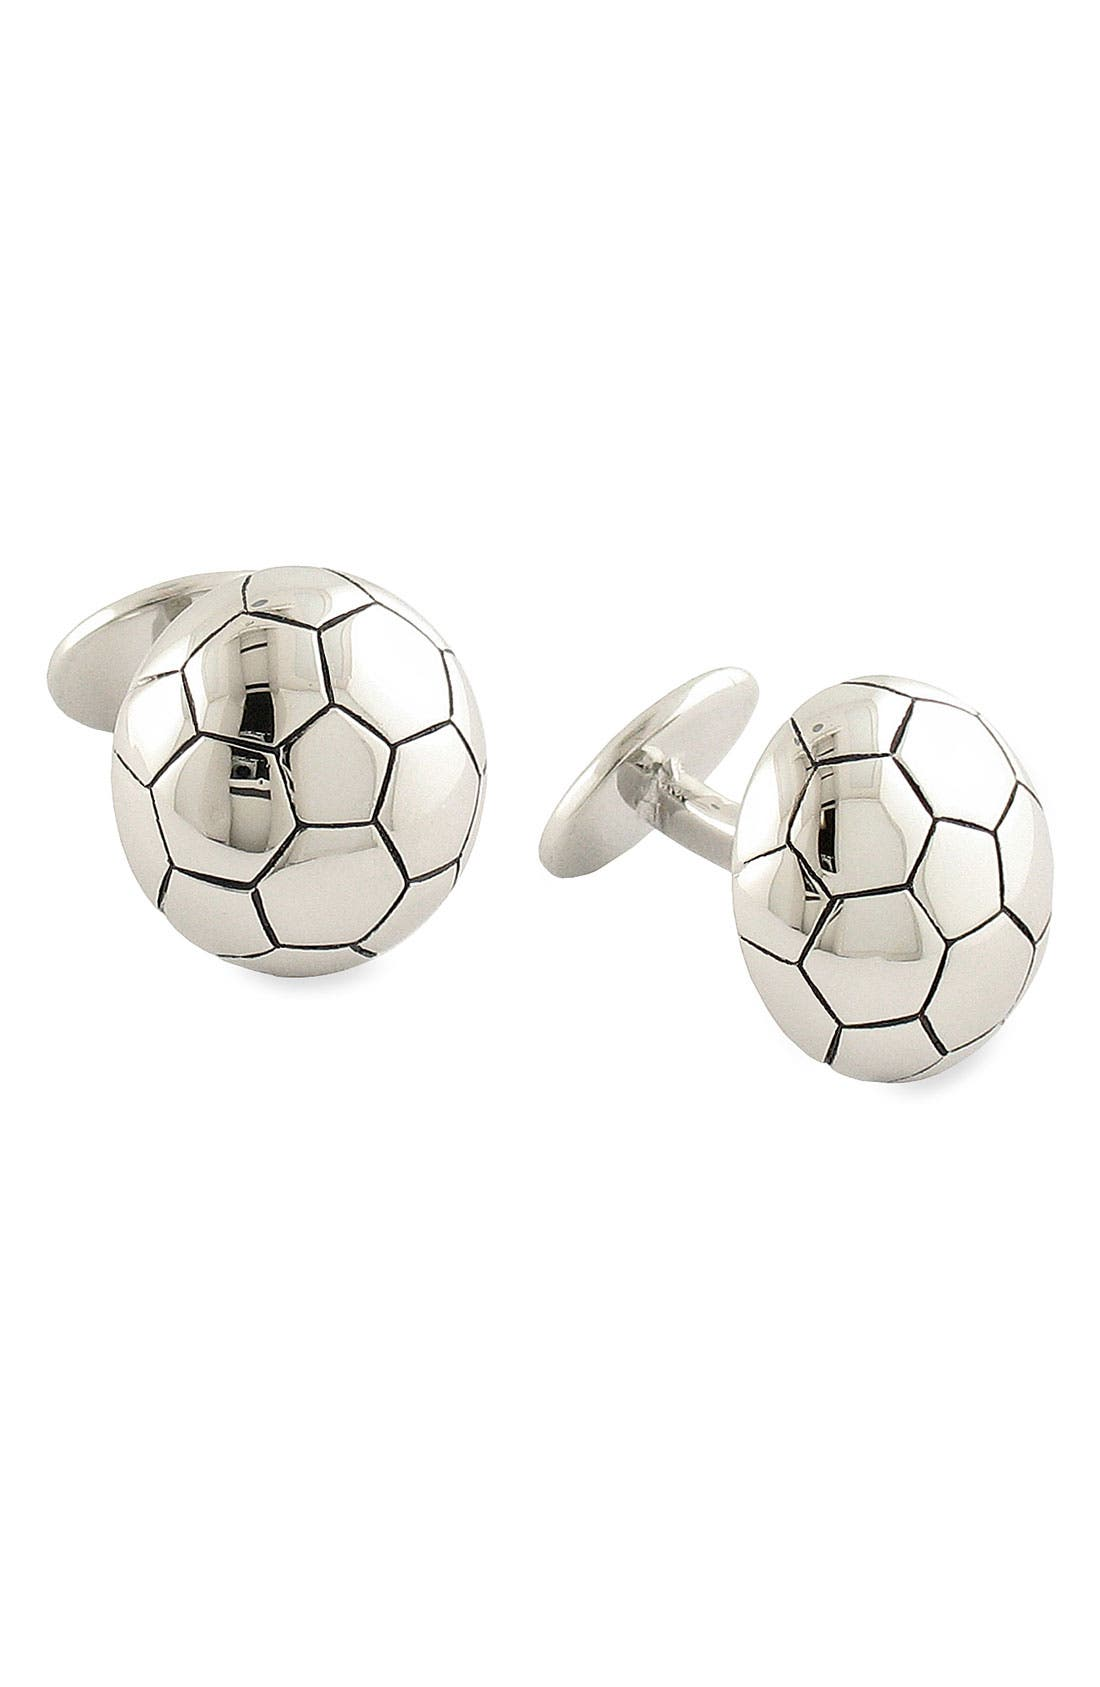 'Soccer' Sterling Silver Cuff Links,                         Main,                         color, Silver Soccer Ball